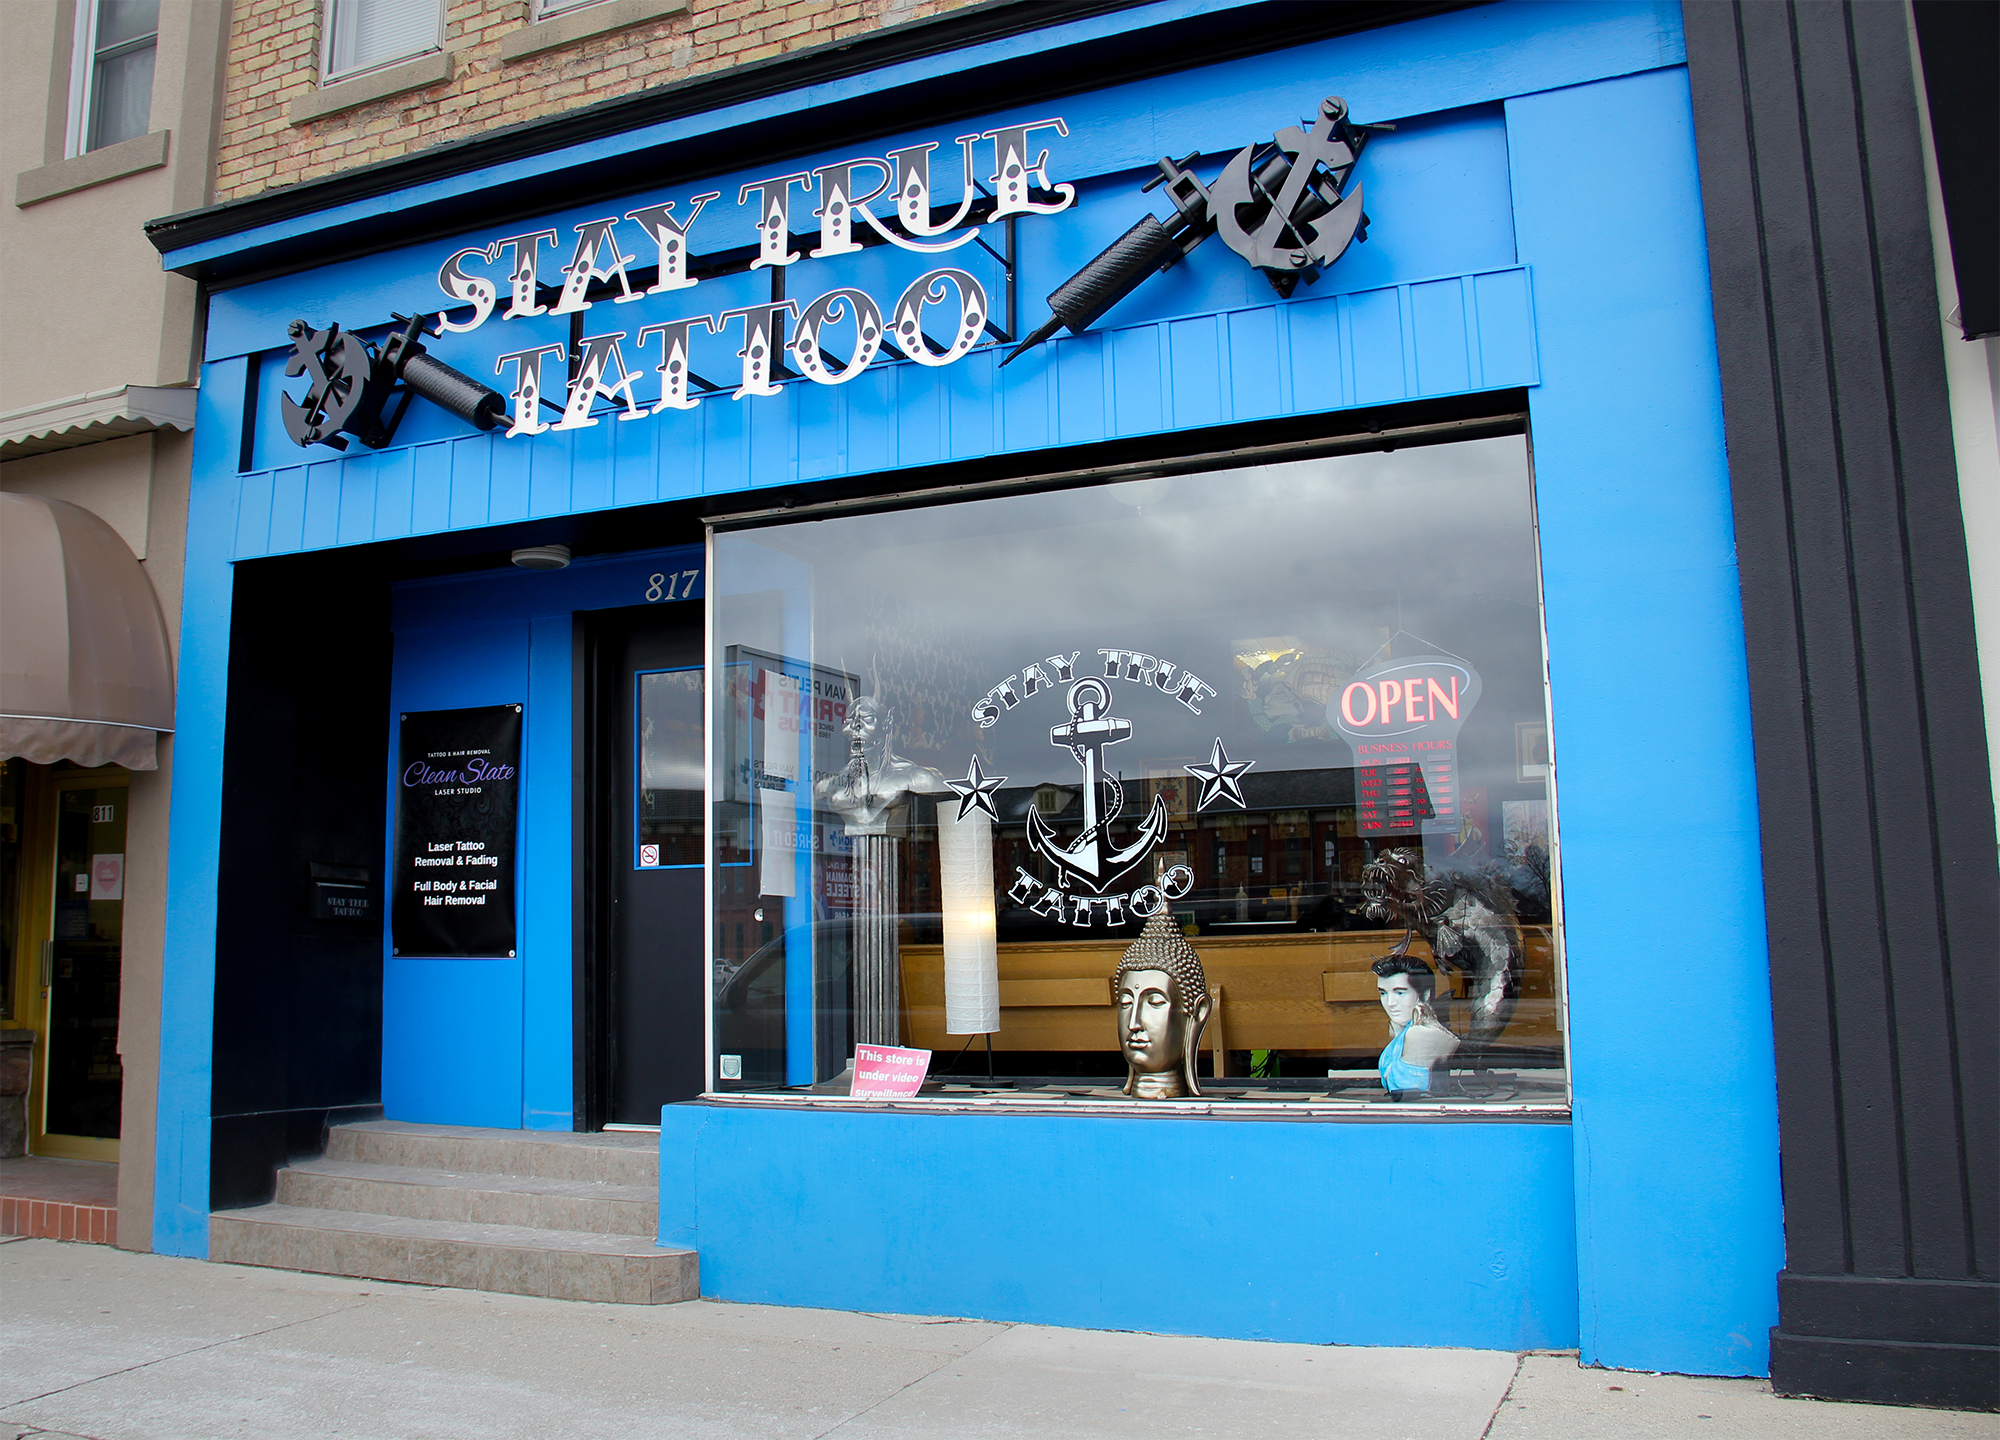 Our location: - Proudly located inside Stay True Tattoo, in the heart of St. Thomas, ON, our modern and elegant studio is equipped to handle a wide range of laser removal services in a clean, comfortable setting.